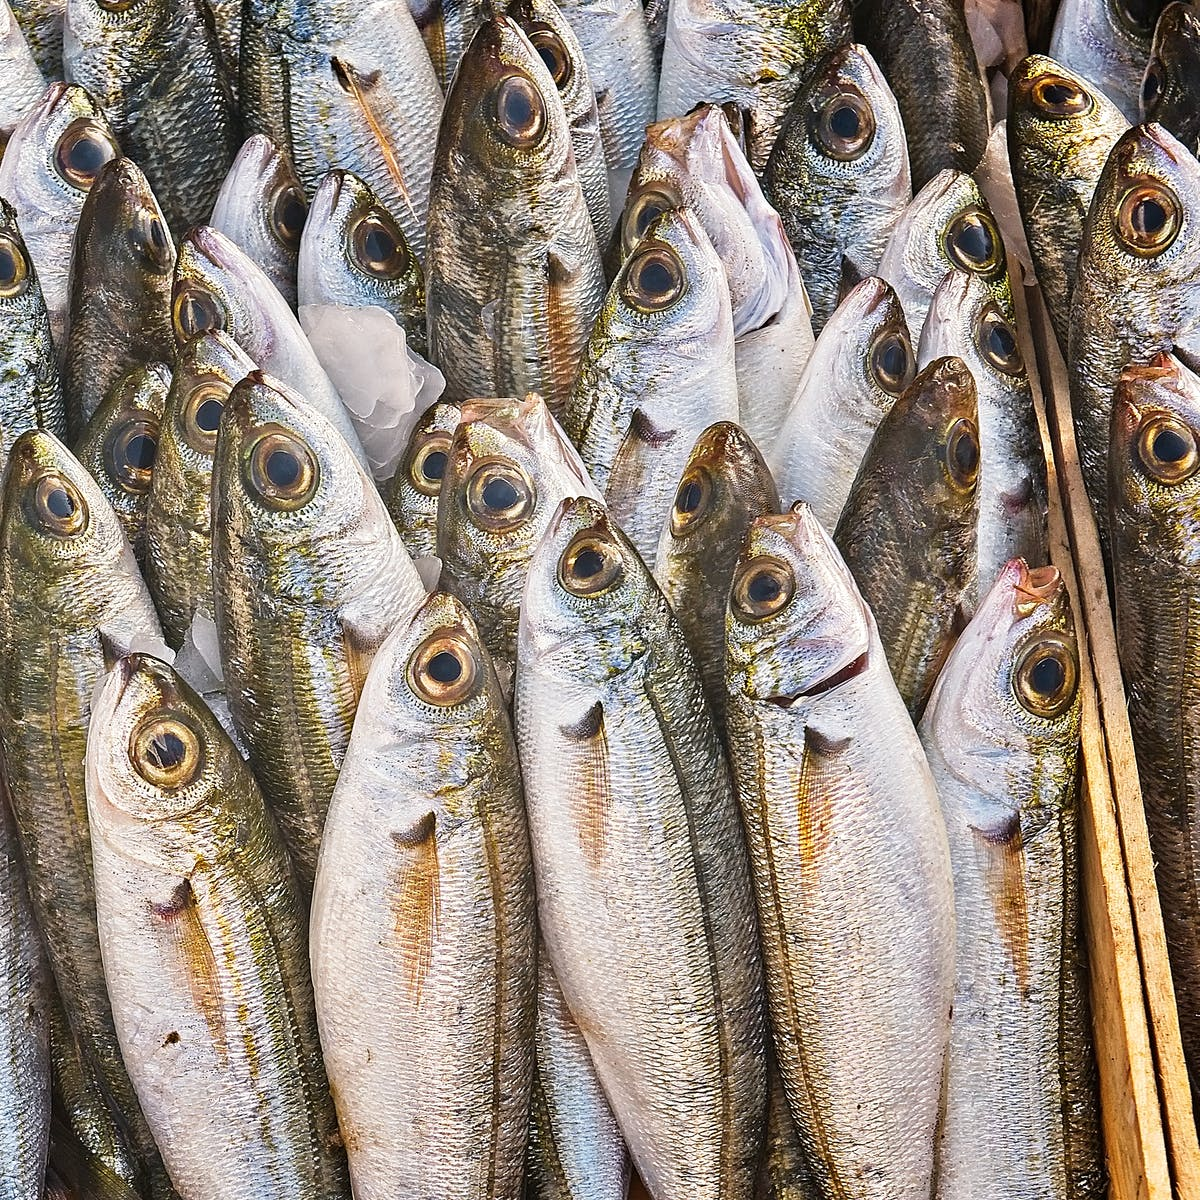 The Omega-3 Crisis: Climate Change Predicted to Cause Global Shortage